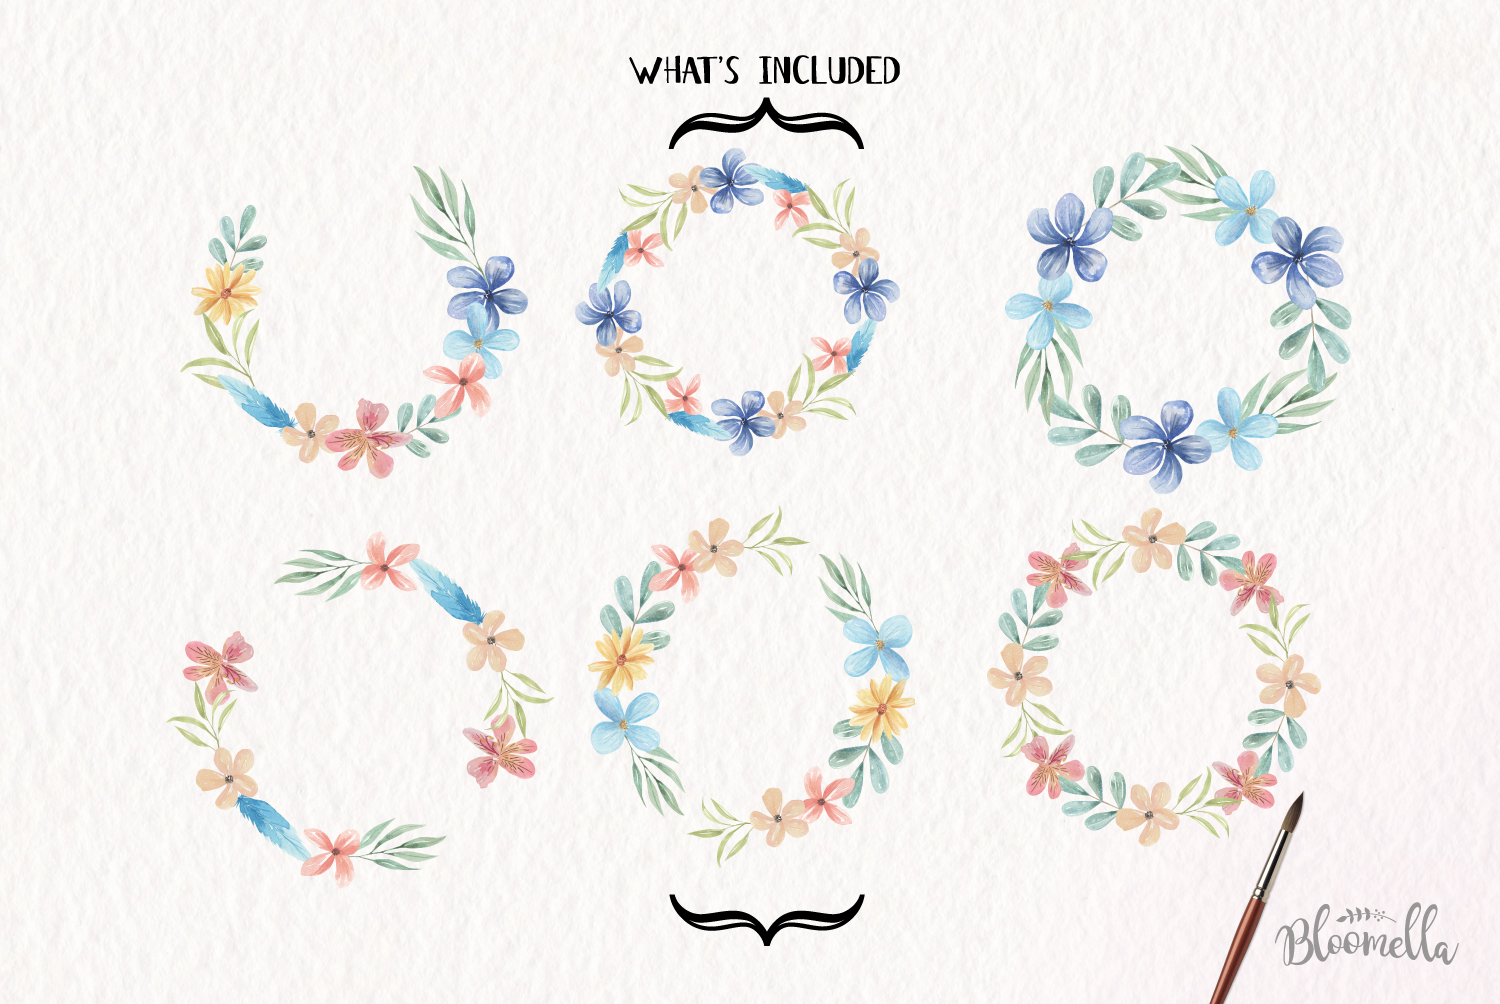 Floral 6 Wreath Watercolor Floral Ocean Blue Garlands Flower example image 5